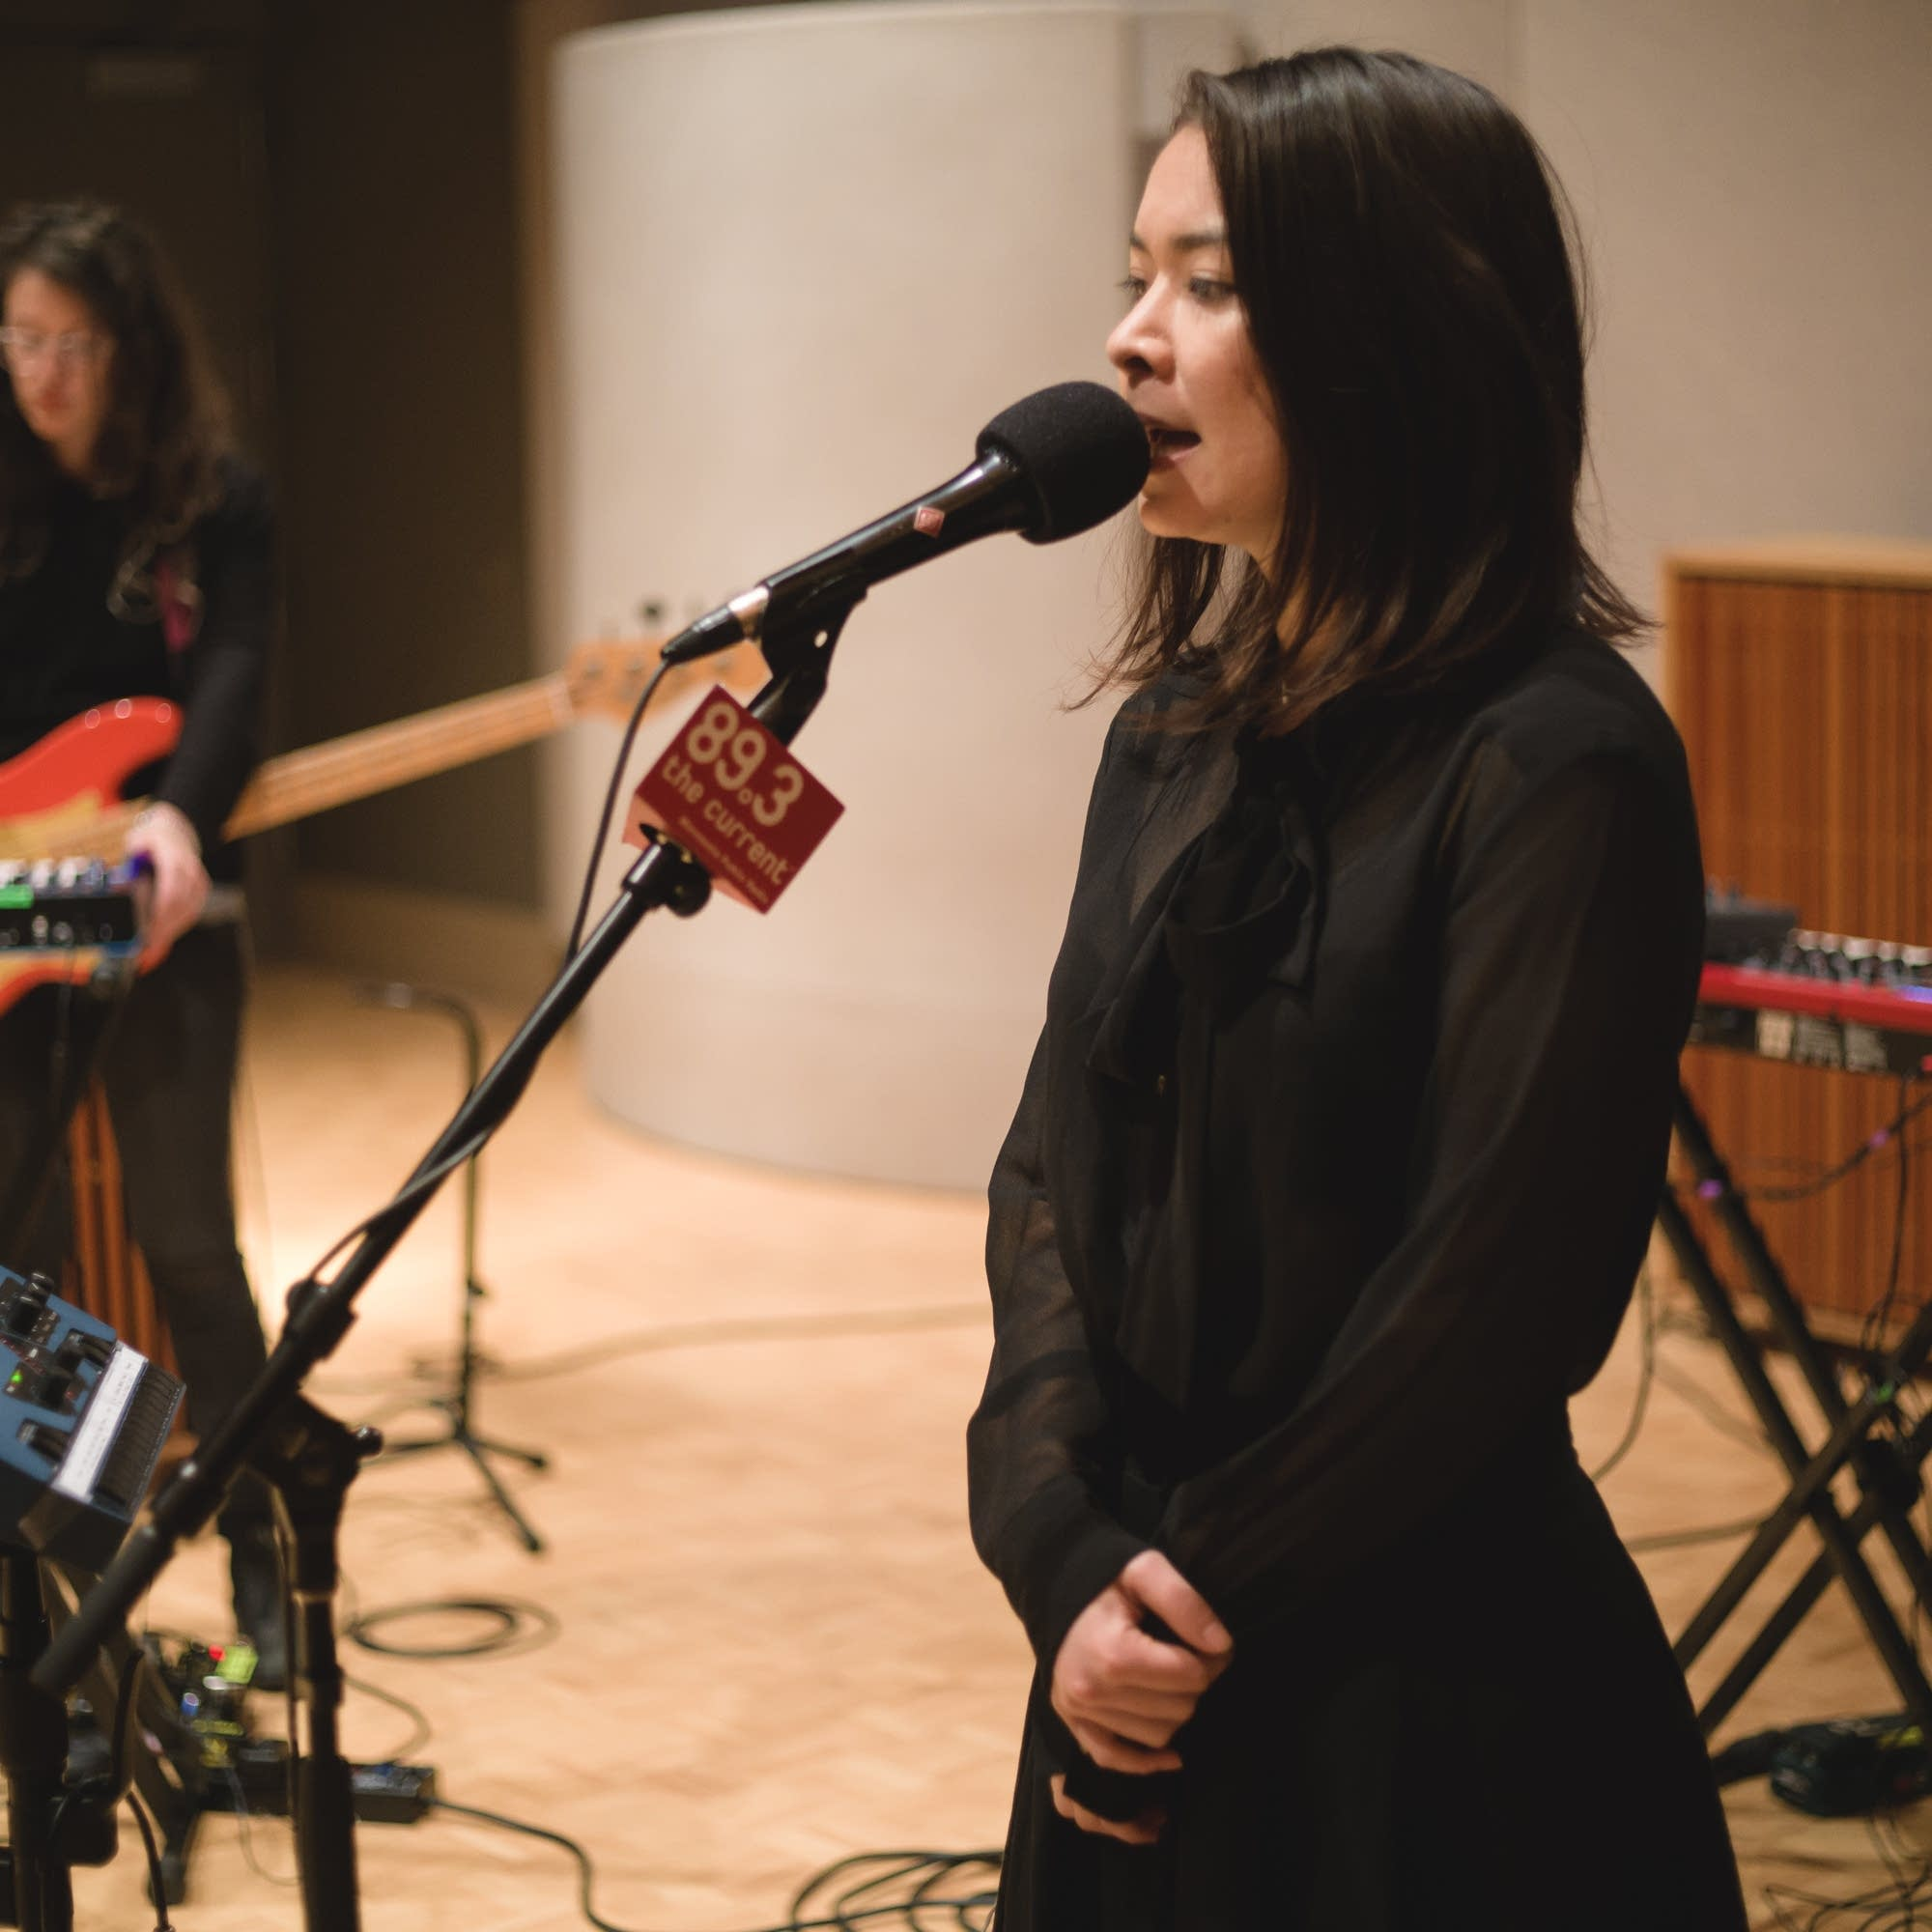 Mitski performs in The Current studio